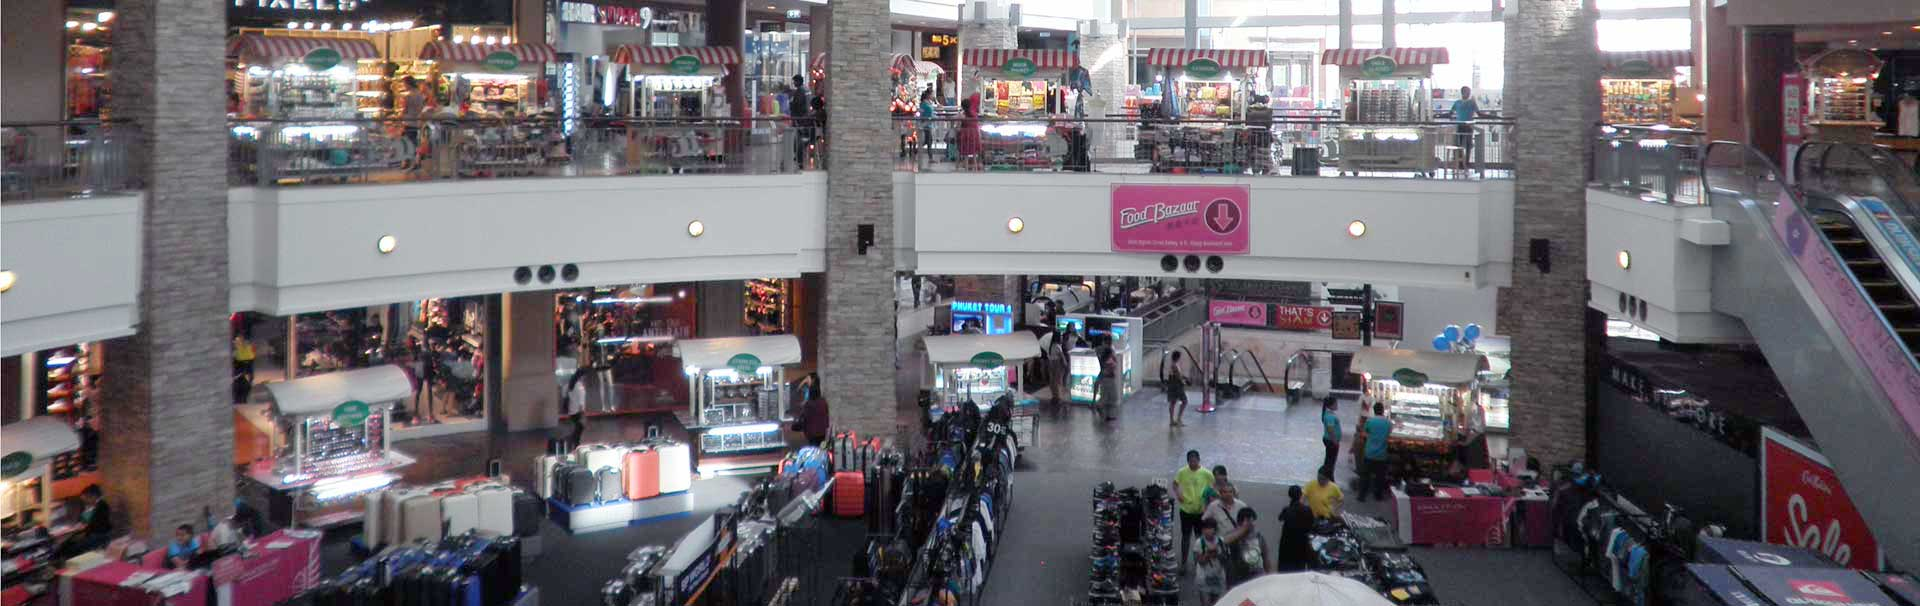 Inside Jung Ceylon shopper centre in Phuket